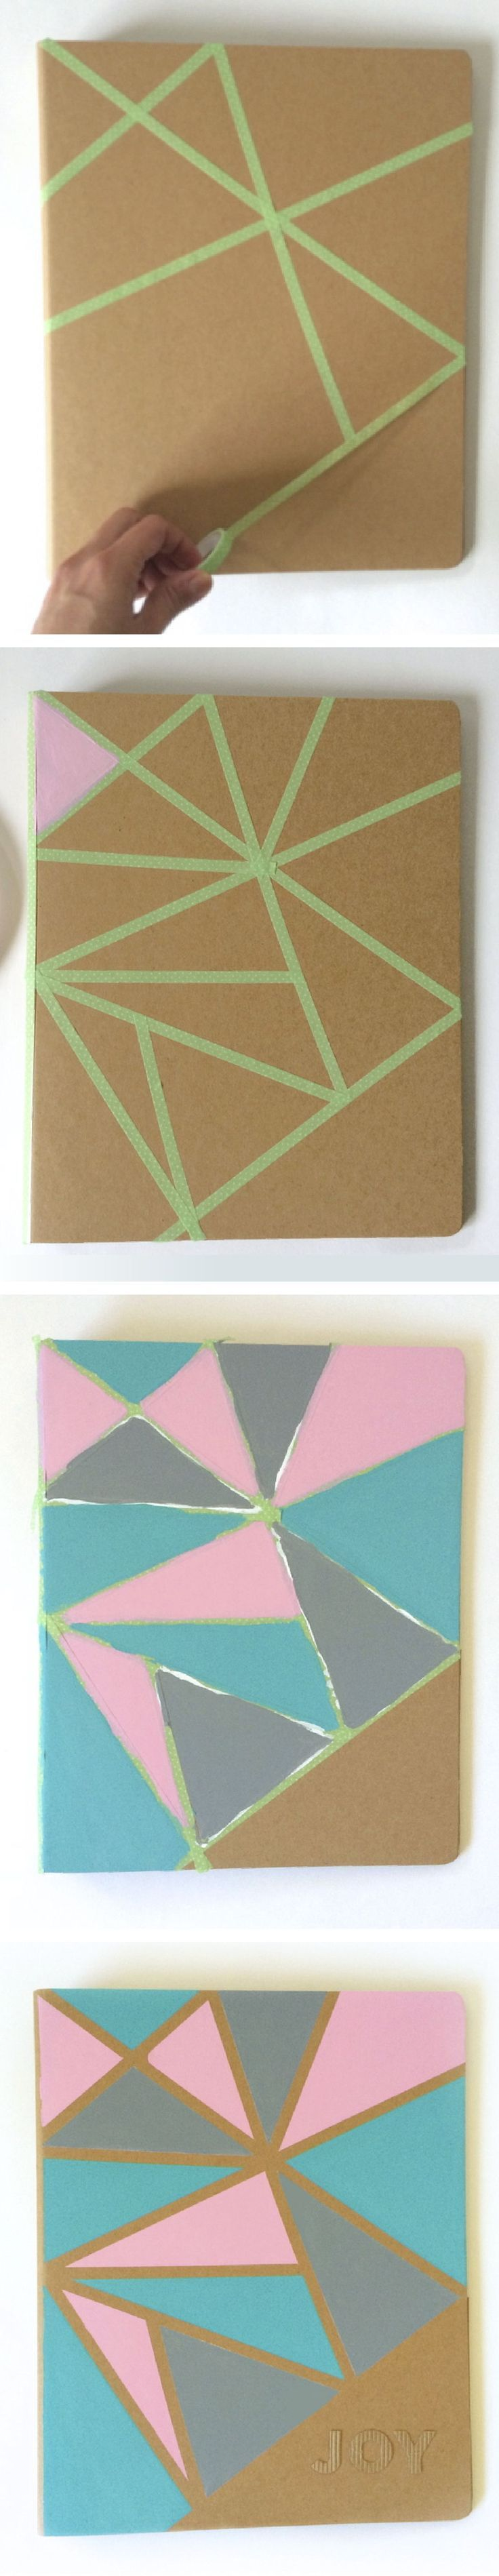 Paint and decorate notebooks with your kiddos to prepare for going back to school! Your kids will love to customize and create their own designs on their school supplies.